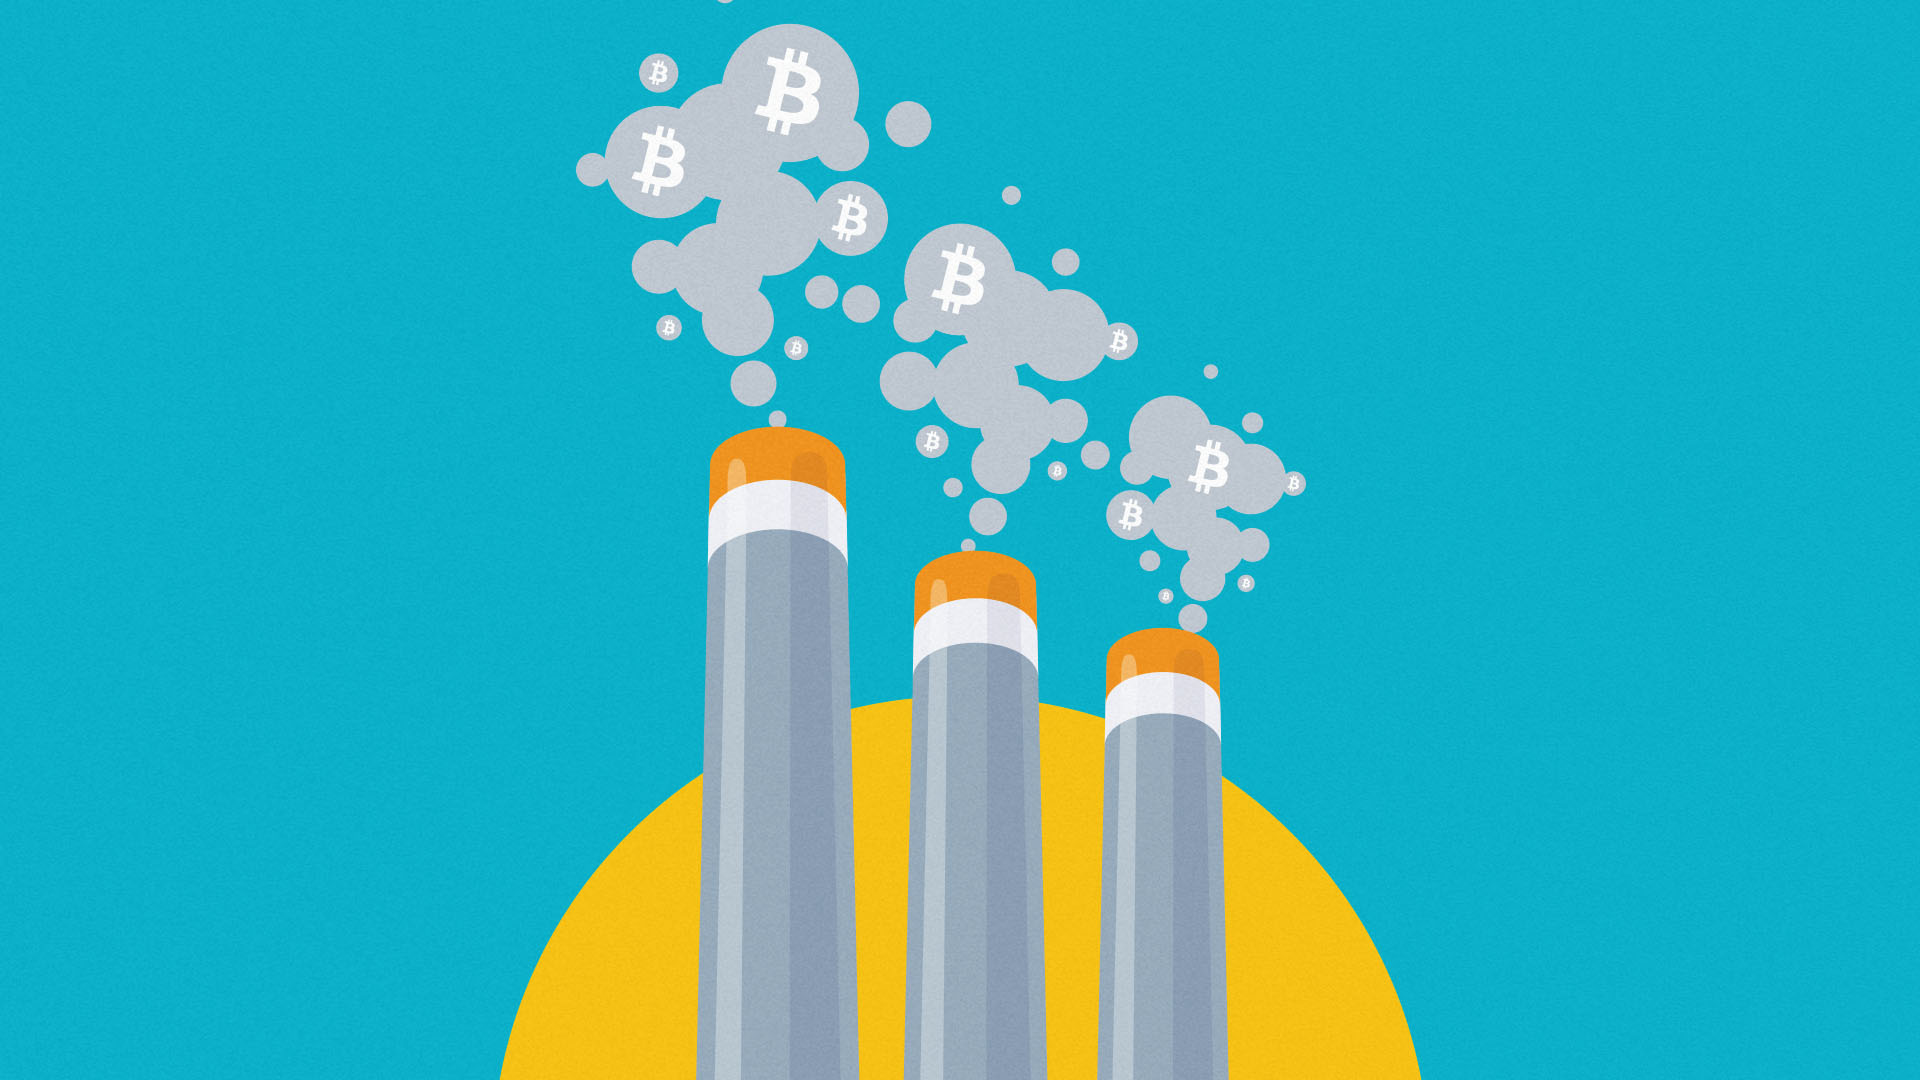 Three chimney stacks bellowing out grey fumes shaped like the bitcoin logo. The background and stacks resemble the colours of the Kazakhstan flag.